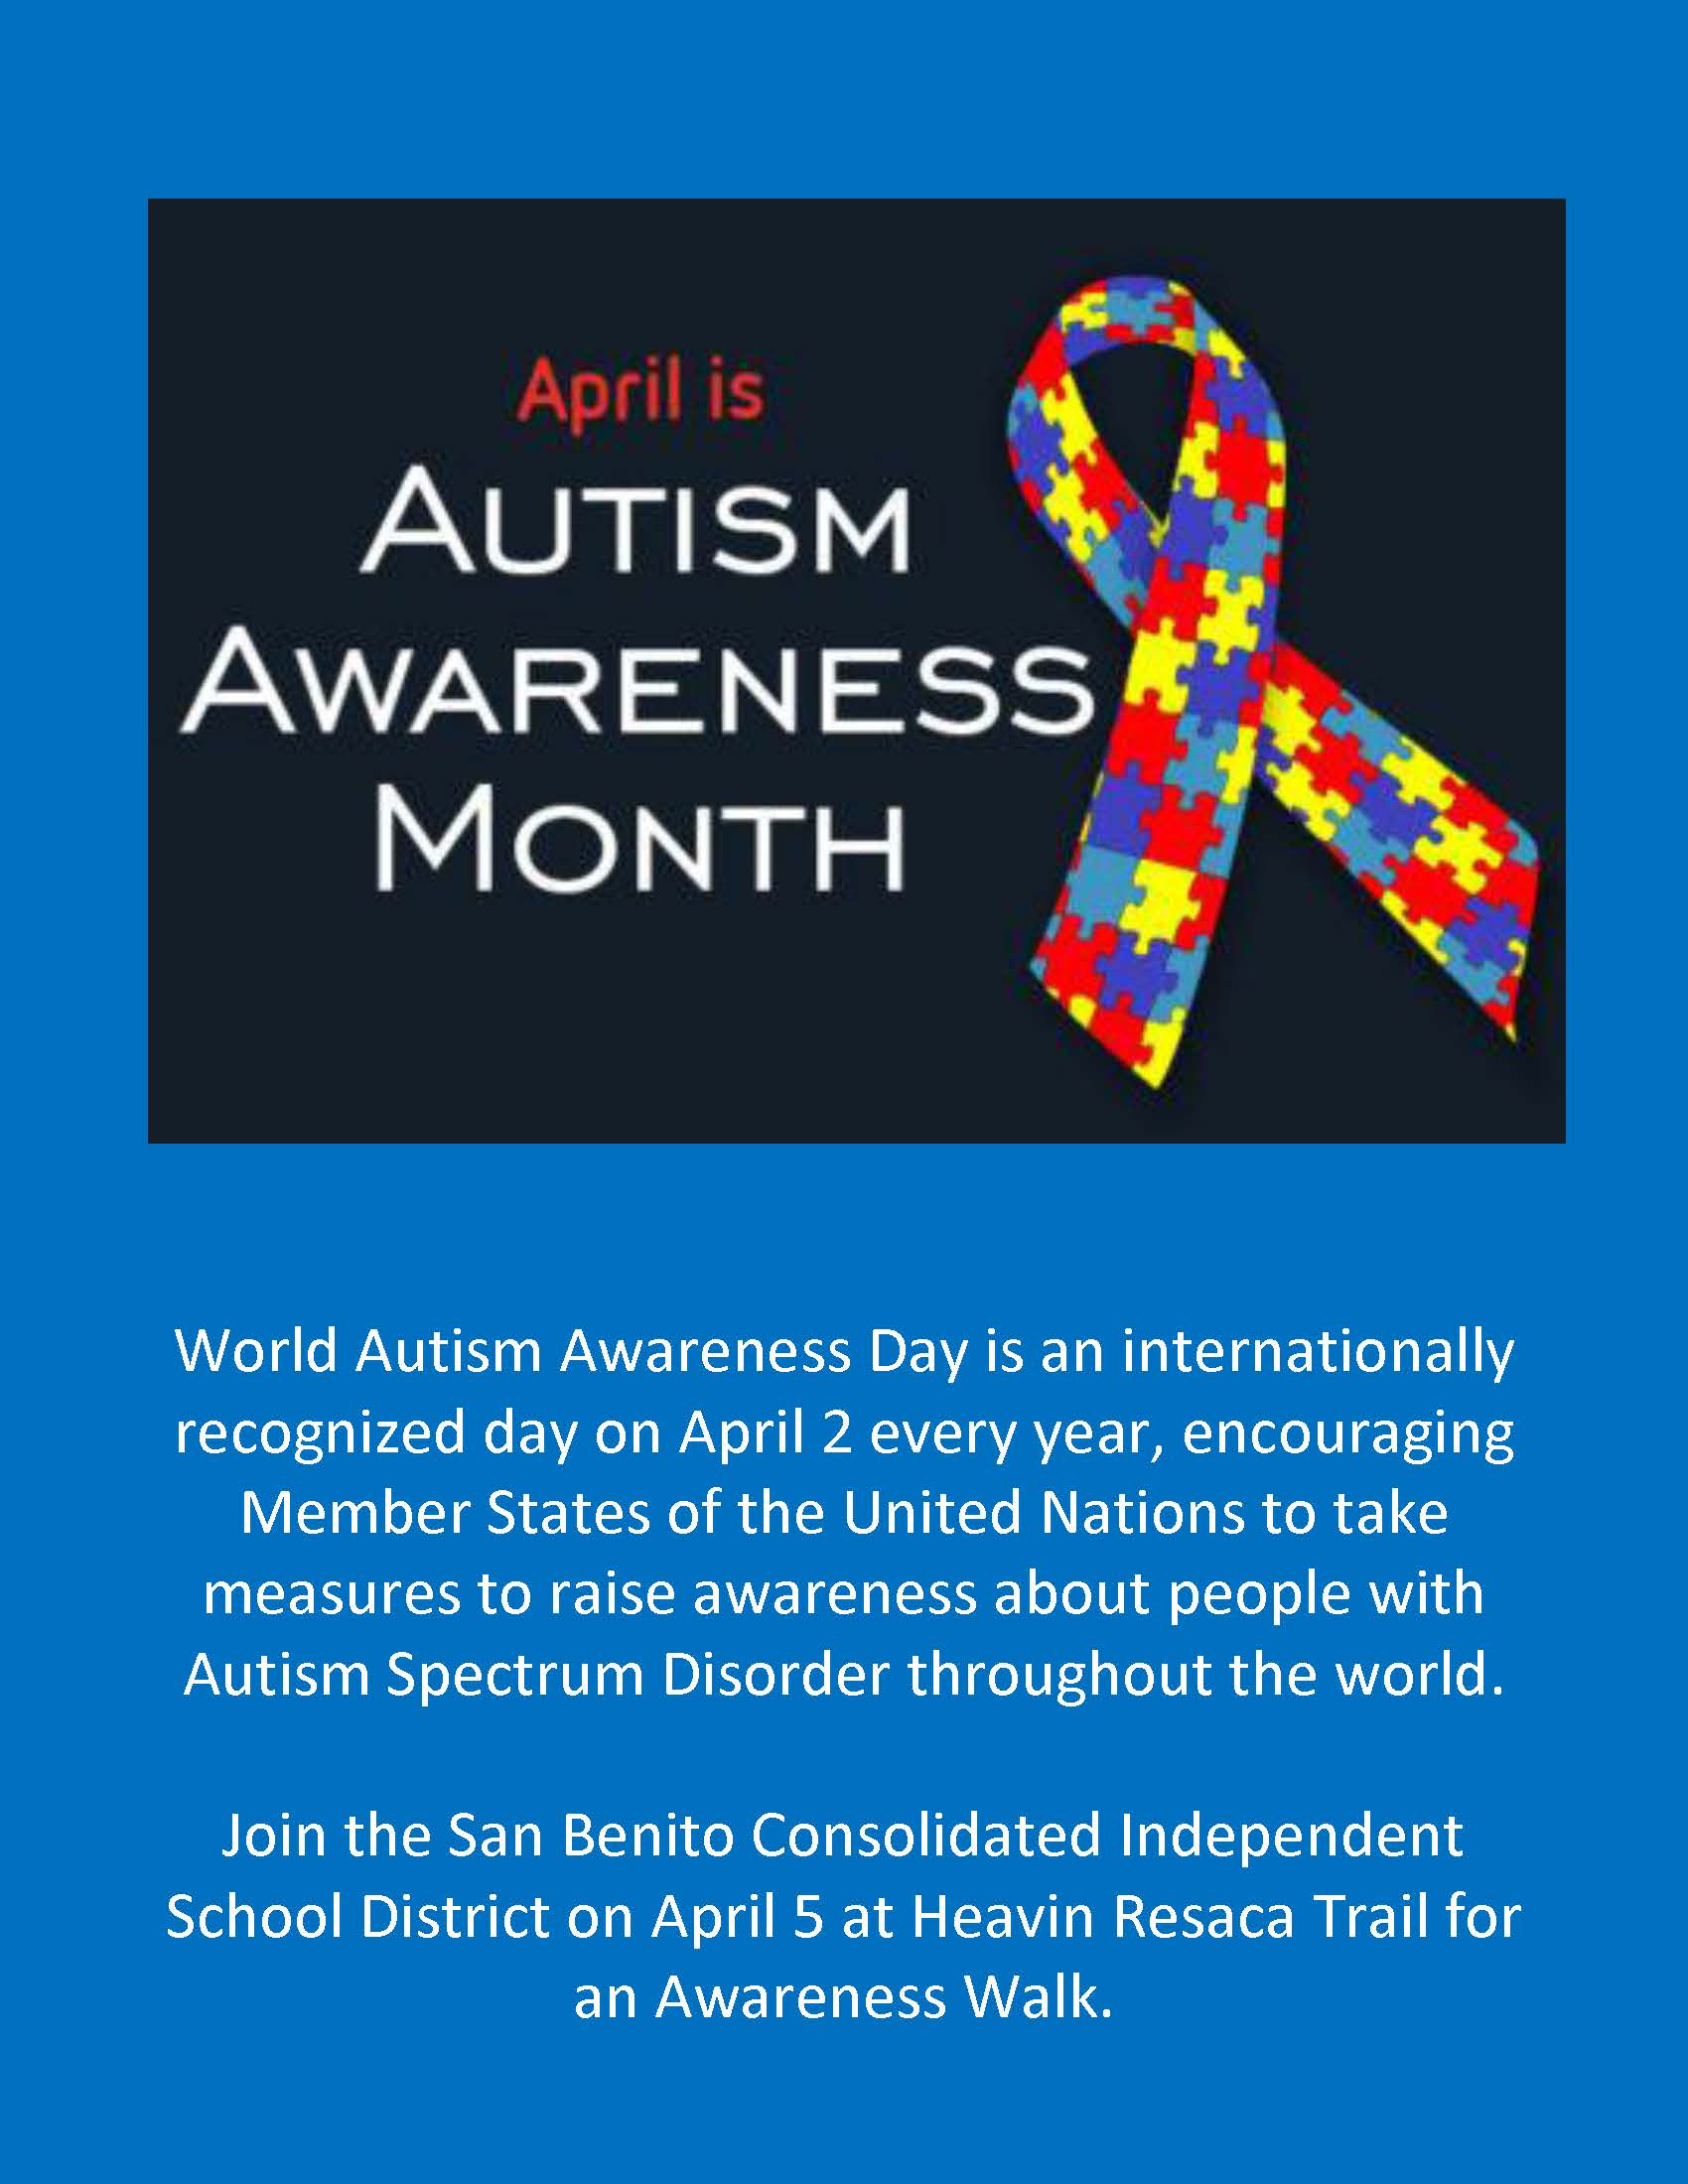 World Autism Awareness Day is an internationally recognized day on April 2 every year